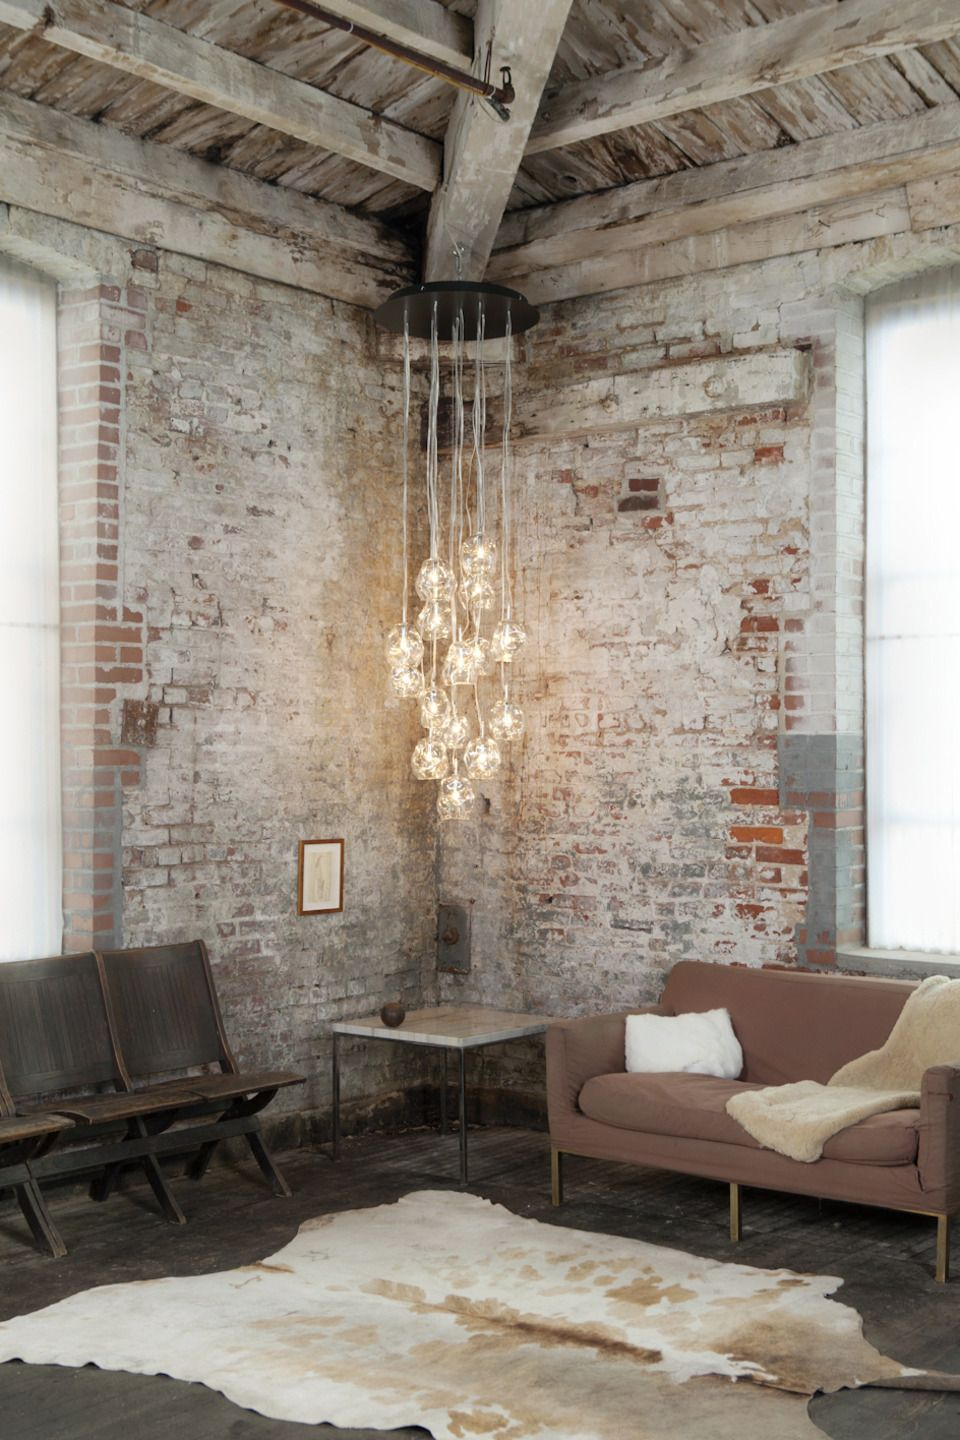 Looking for interior design ideas for your